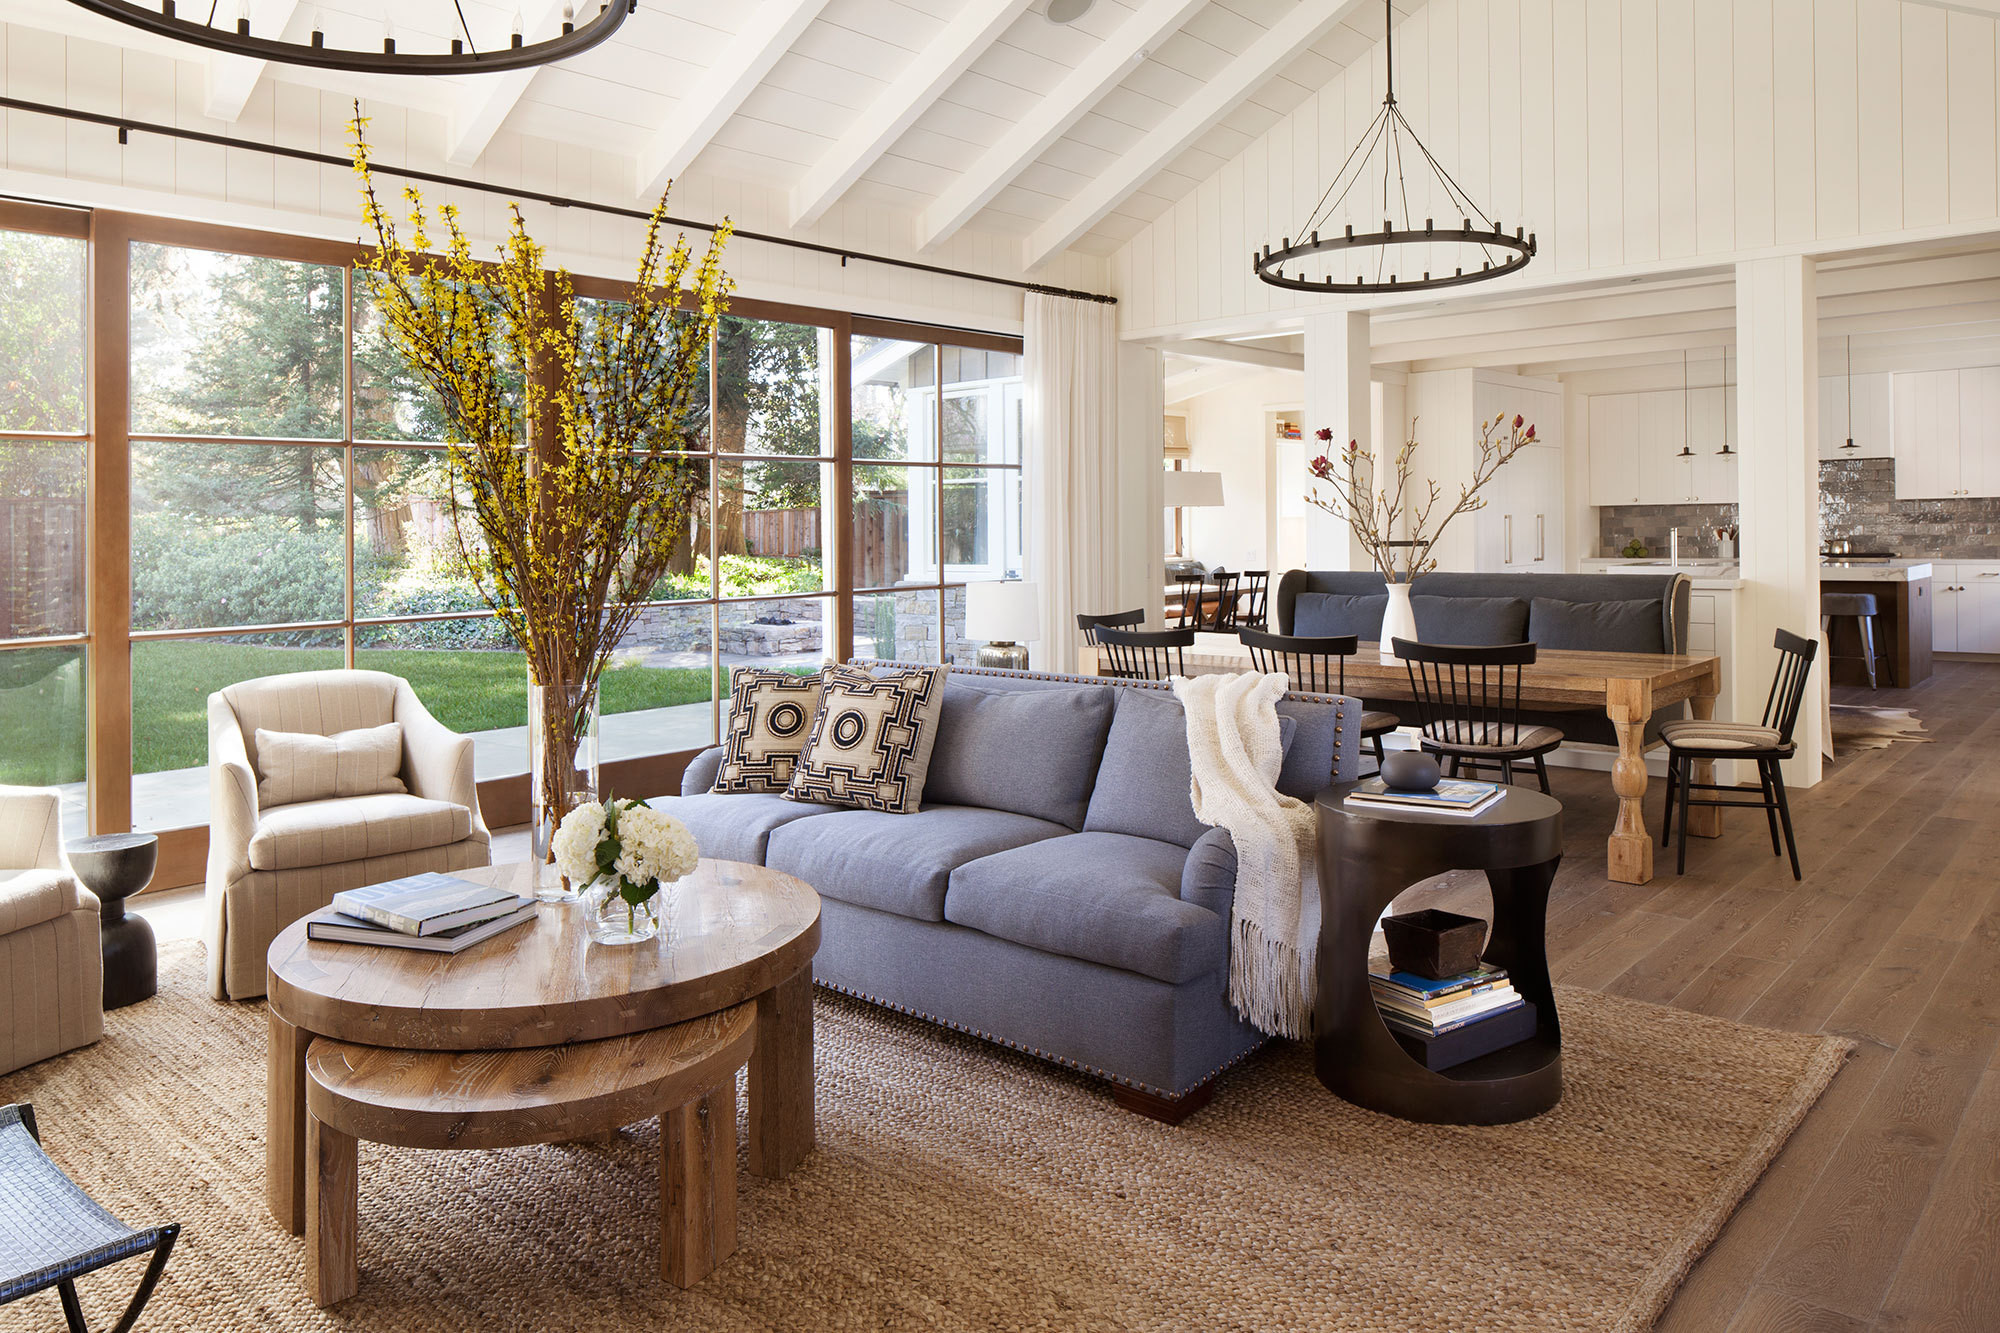 For a family home in Menlo Park, California, interior designer Jen Macdonald and architect Tim Chappelle collaborated to create a unique indoor-outdoor space.